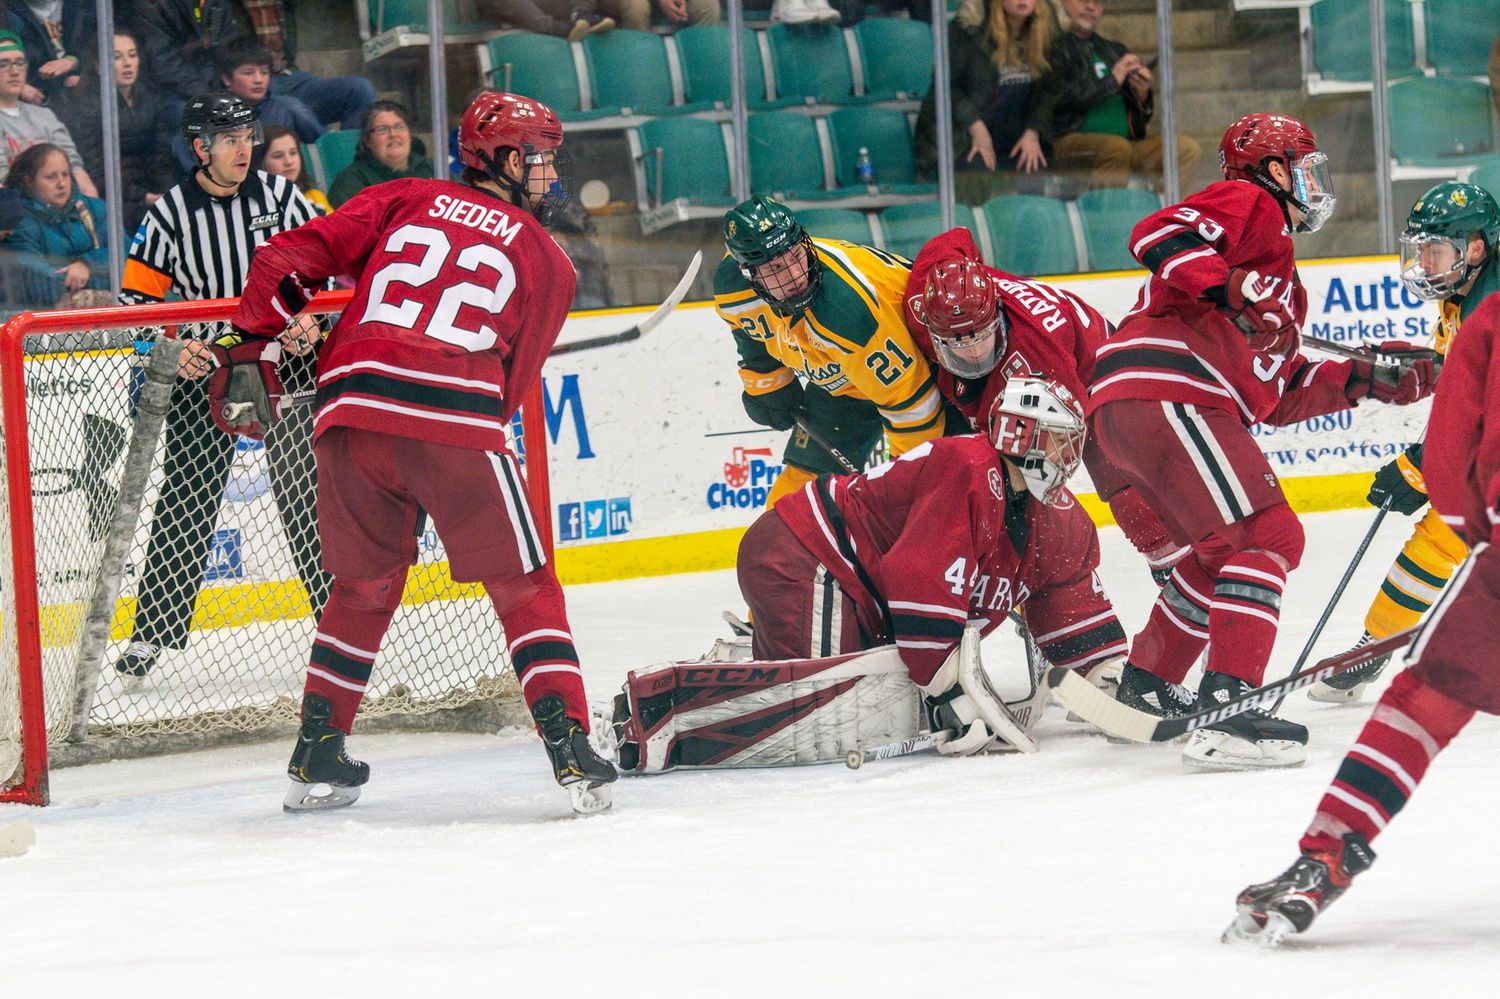 The Crimson skated past the Golden Knights in a statement win — the program's first victory over a top-5 foe in three seasons.